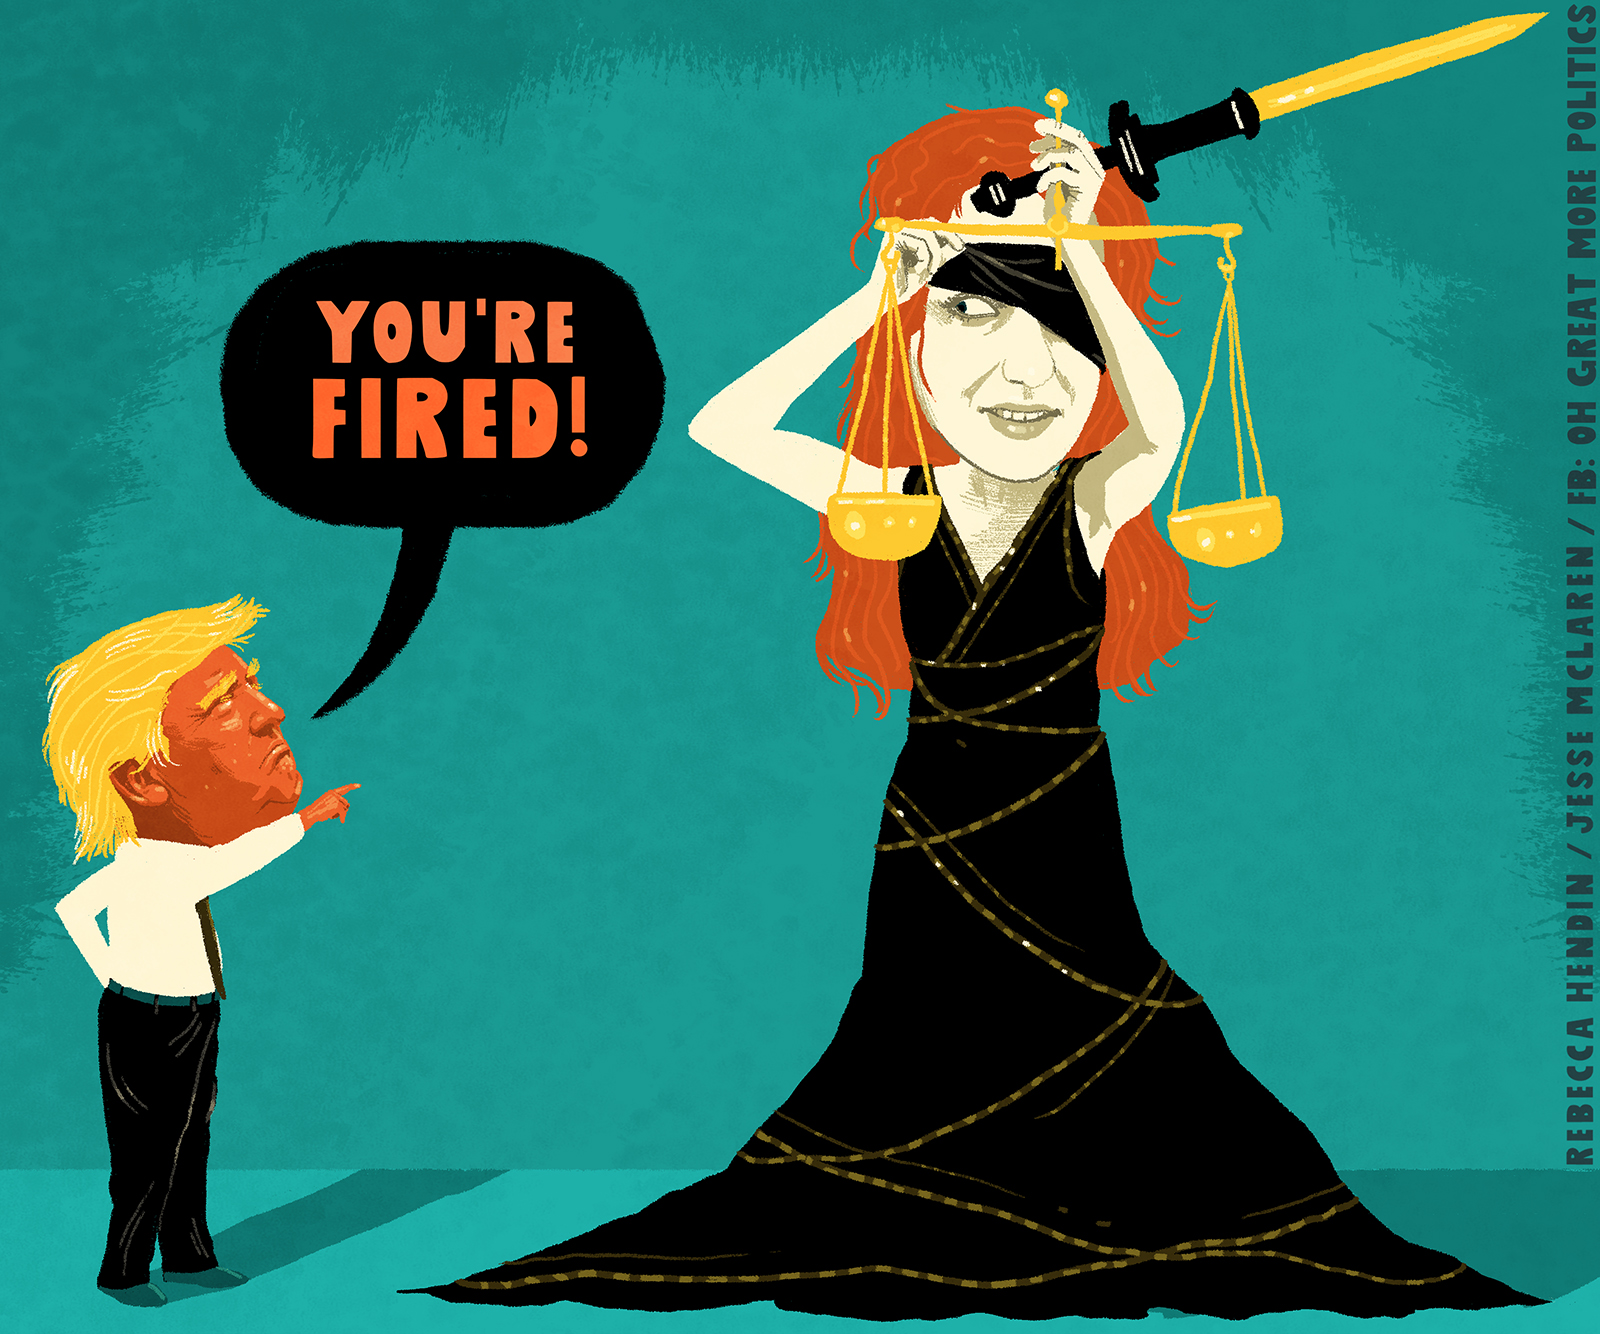 rebecca-hendin-jesse-mclaren-cartoon-trump-fires-lady-justice-1-1600